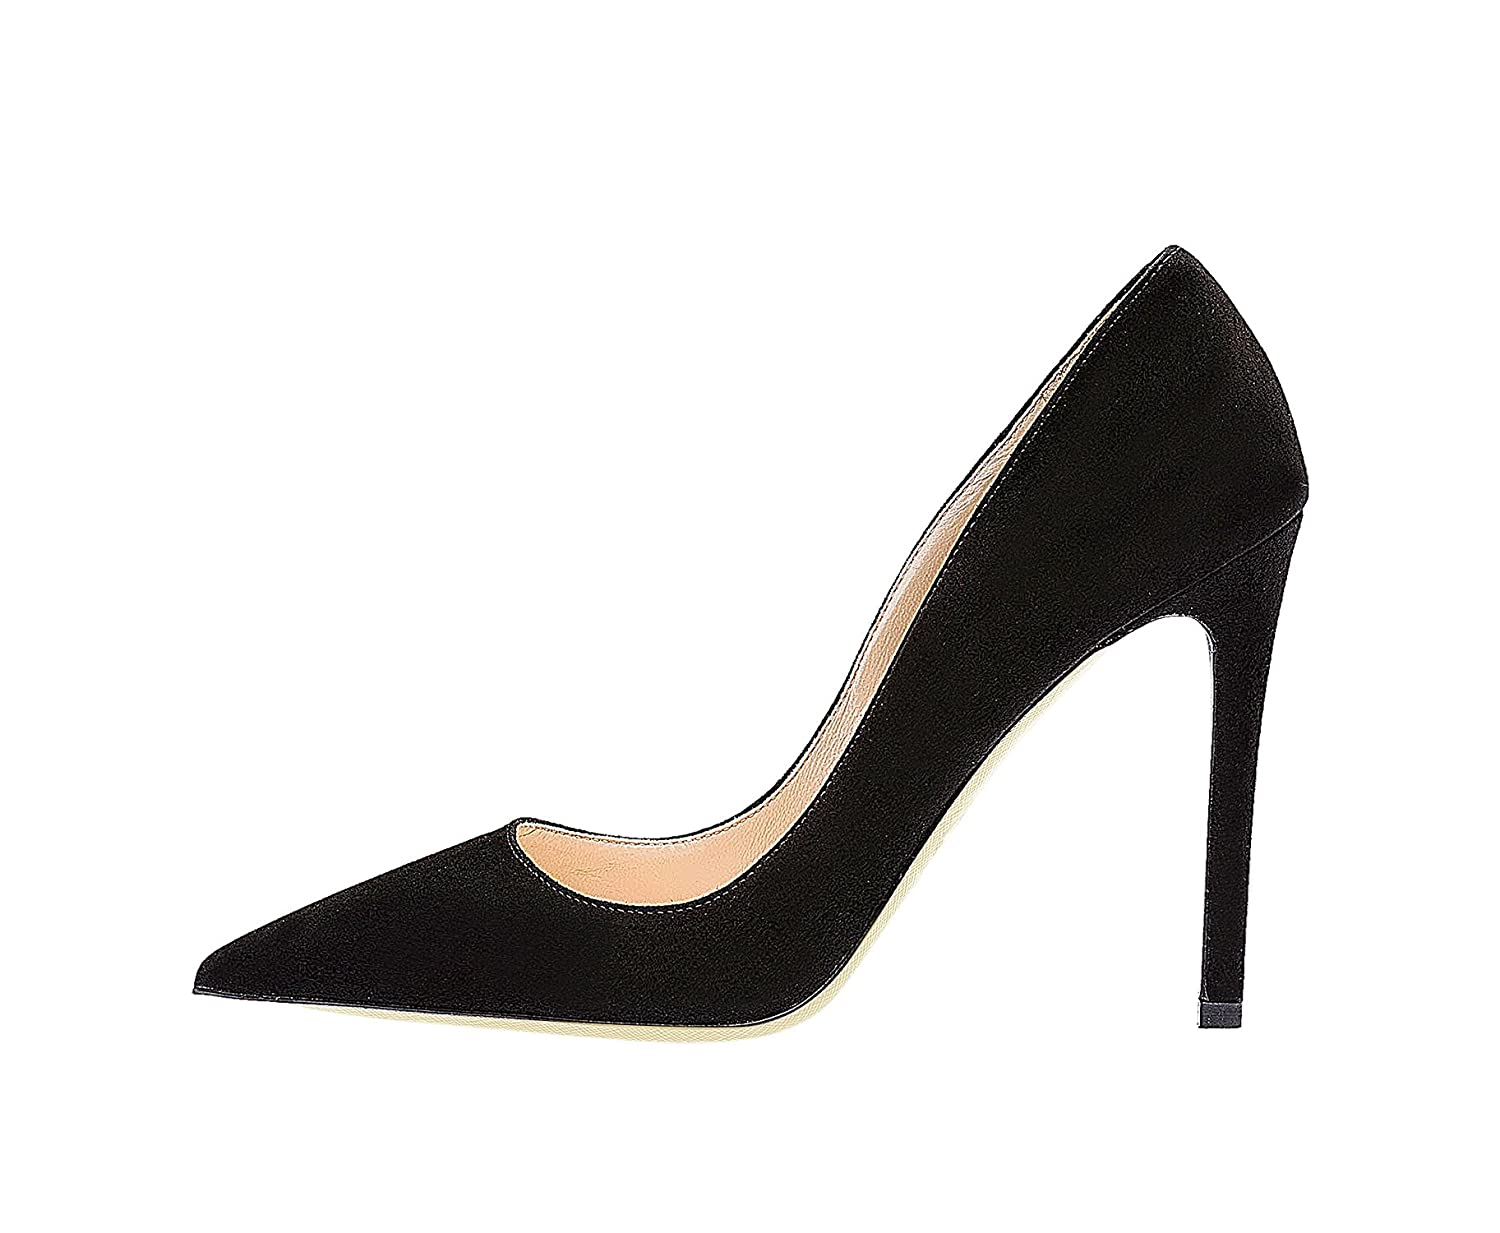 SexyPrey Women's Pointy Toe Stiletto Shoes Formal Office Evening Pumps B074M47MBW 9 B(M) US|Black Suede